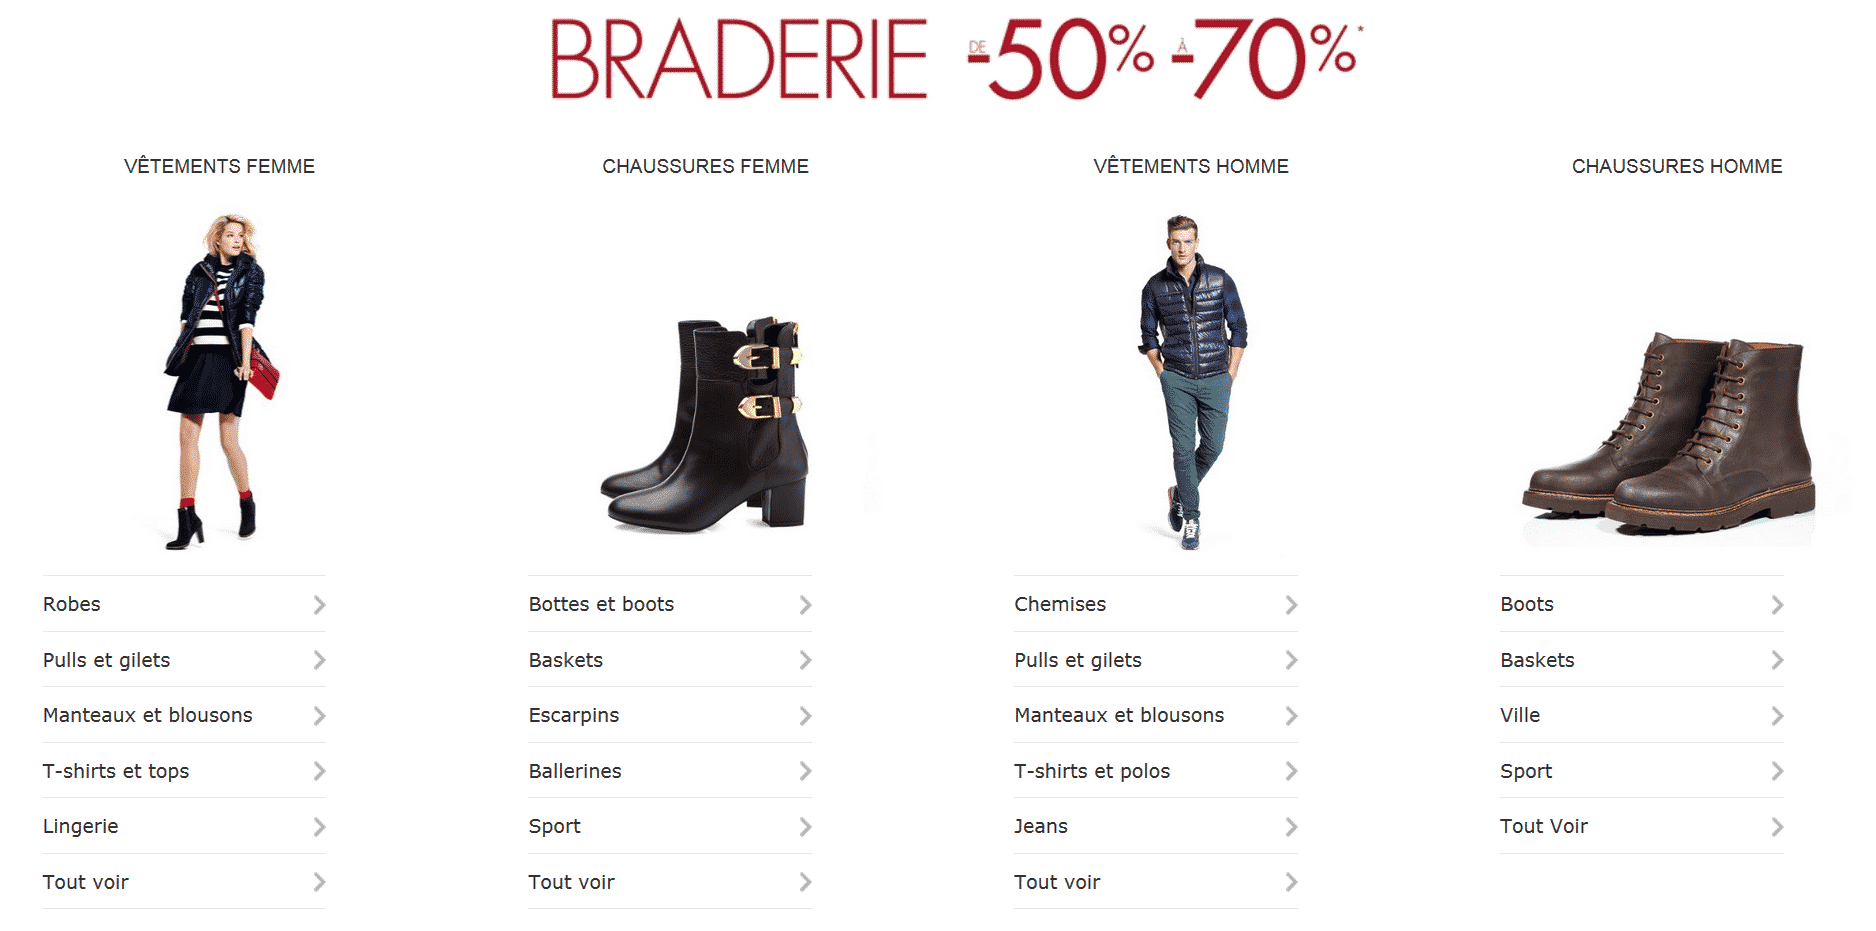 braderie-amazon-50-a-70-de-reduction